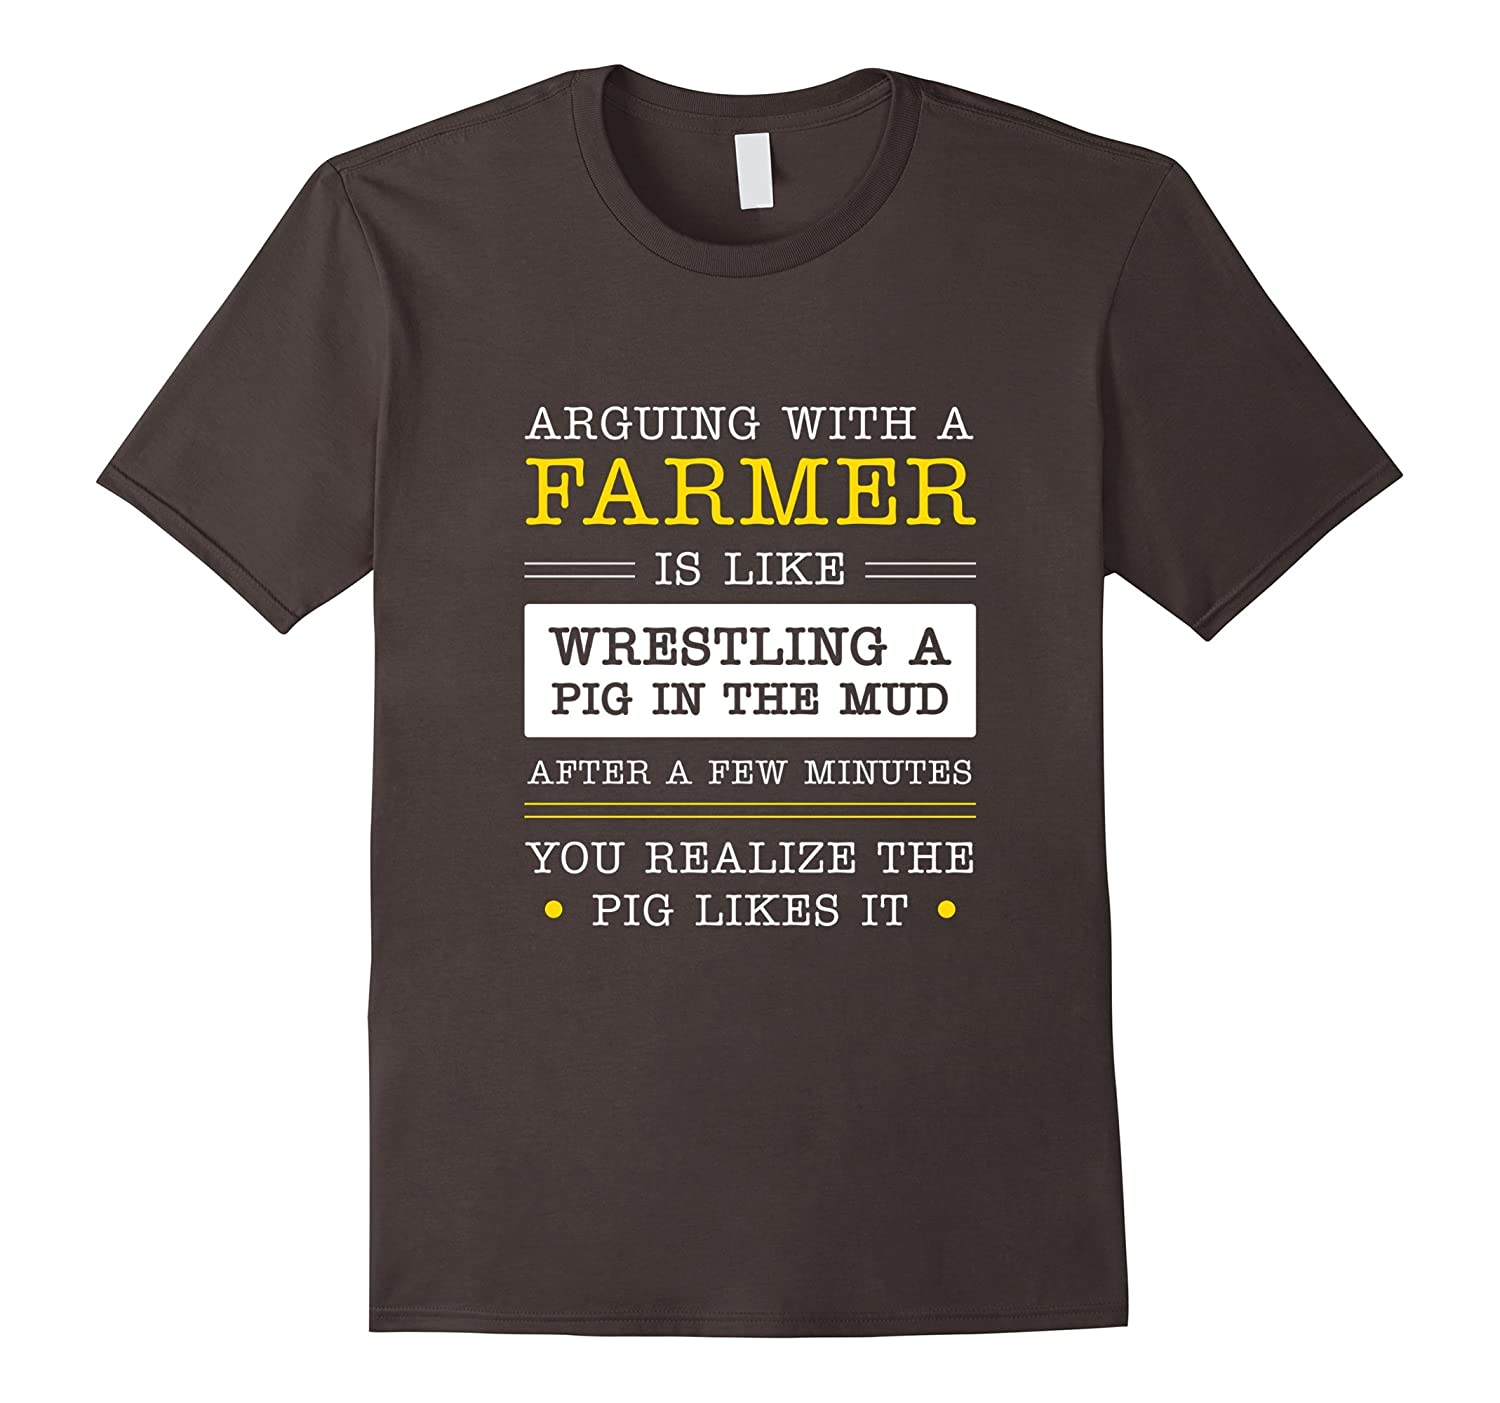 Arguing With A Farmer Like Wrestling A Pig Shirt, Funny Gift-BN